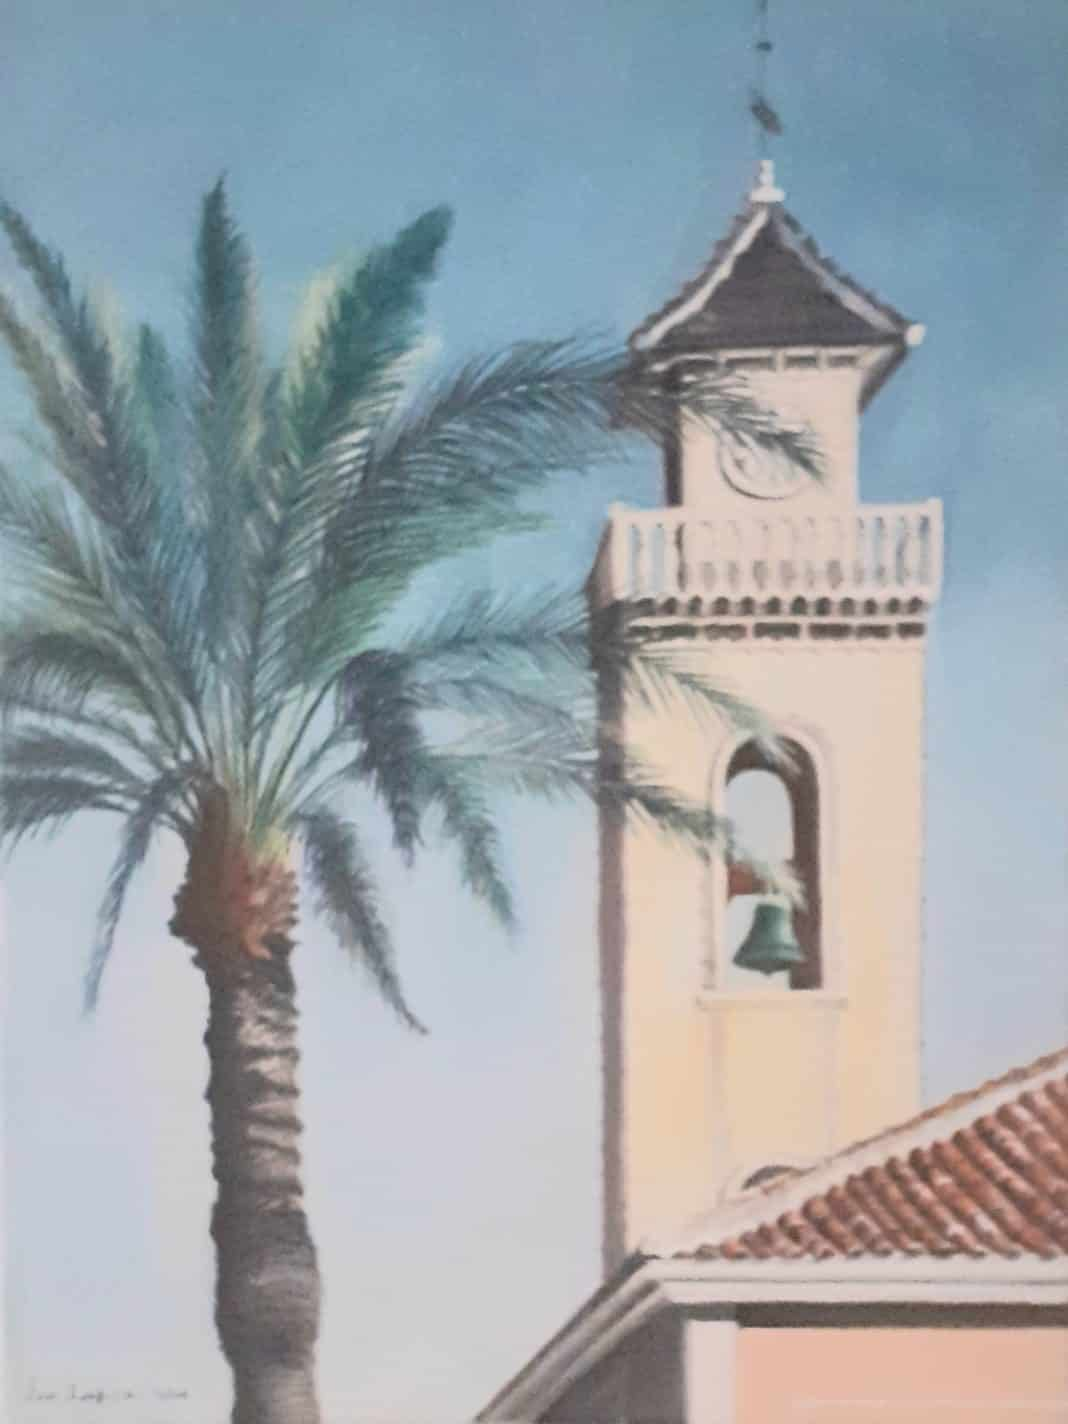 Los Montesinos Church Bell tower prints to raise money for children.